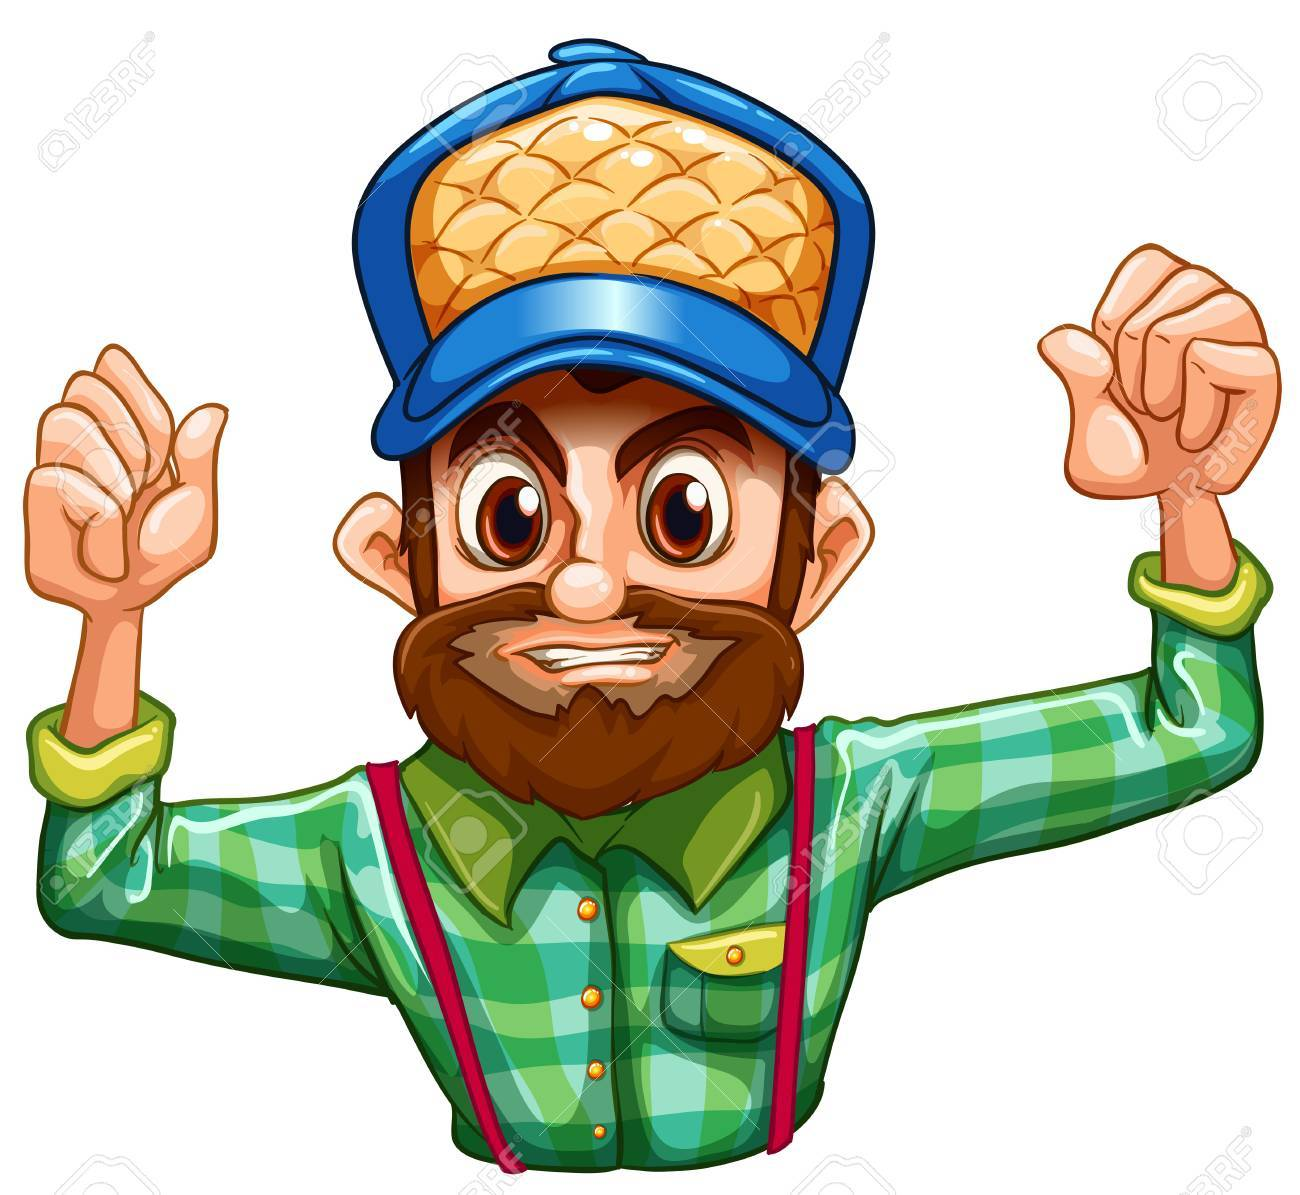 Illustration of a lumberjack wearing a checkered longsleeve on a white background Stock Vector - 22210986